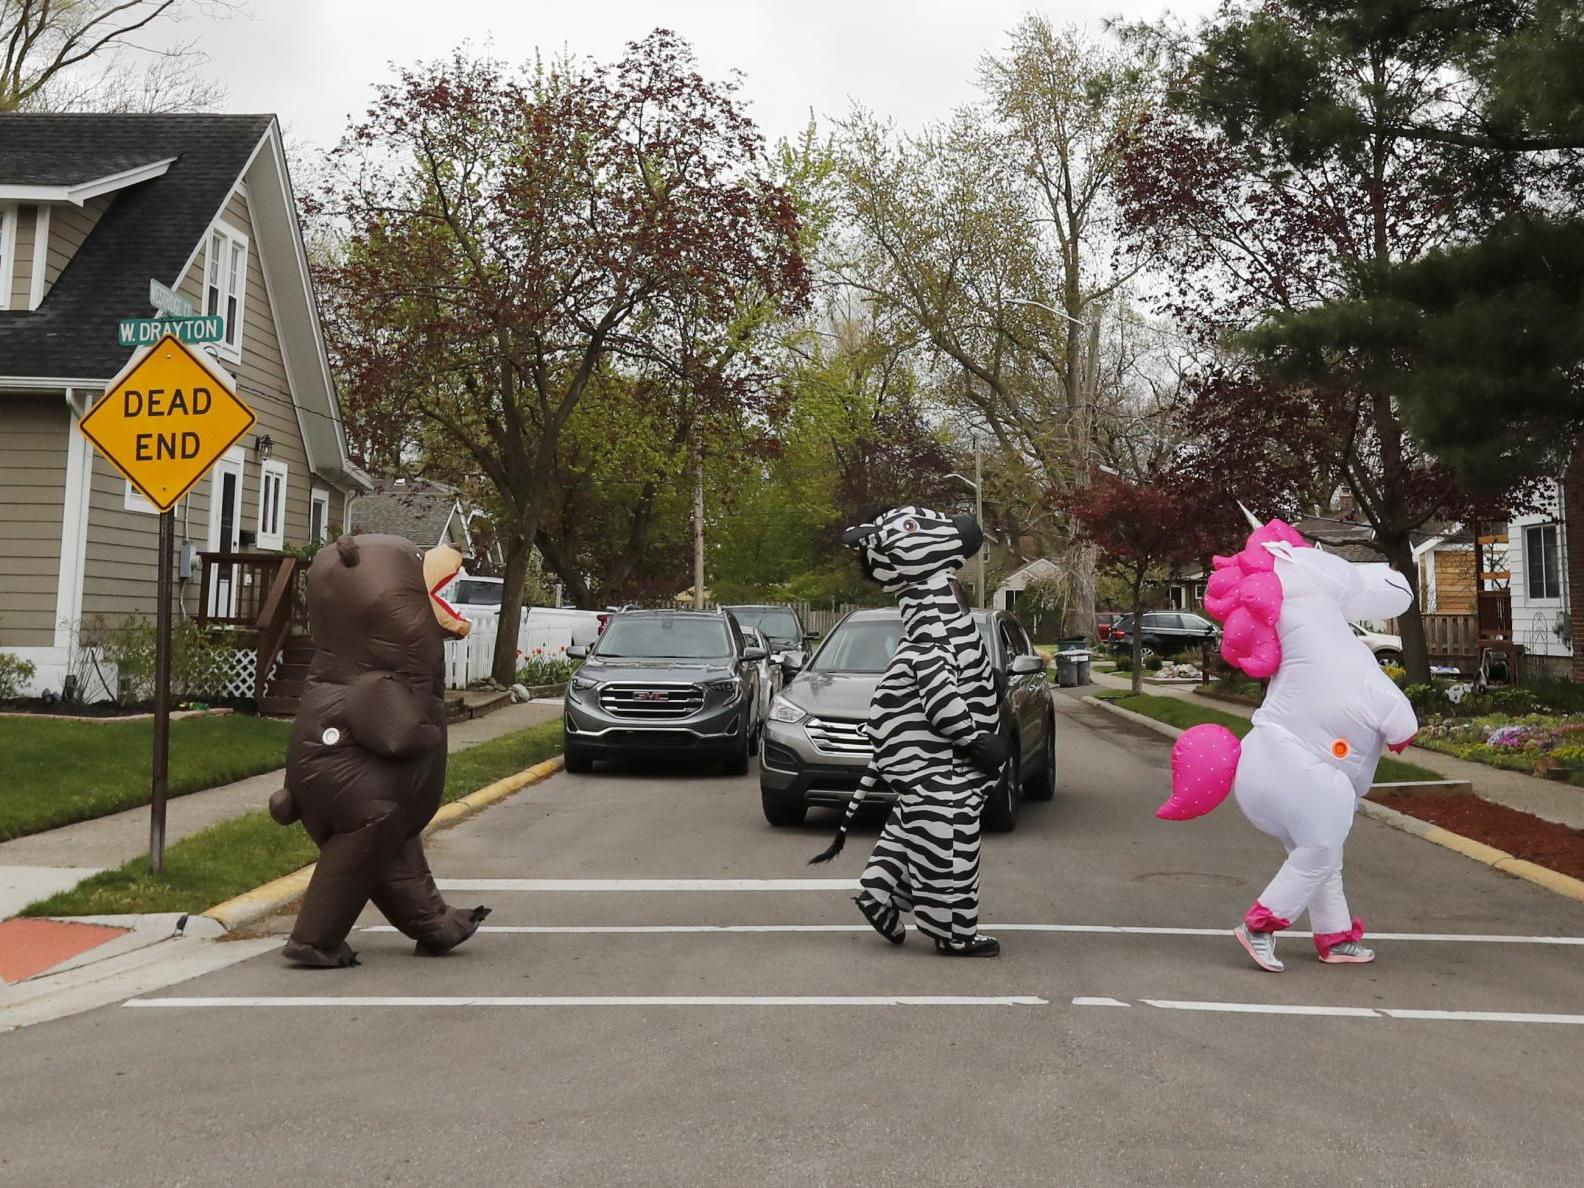 Coronavirus: Detroit residents try to lift neighbours' spirits with inflatable costume parades thumbnail